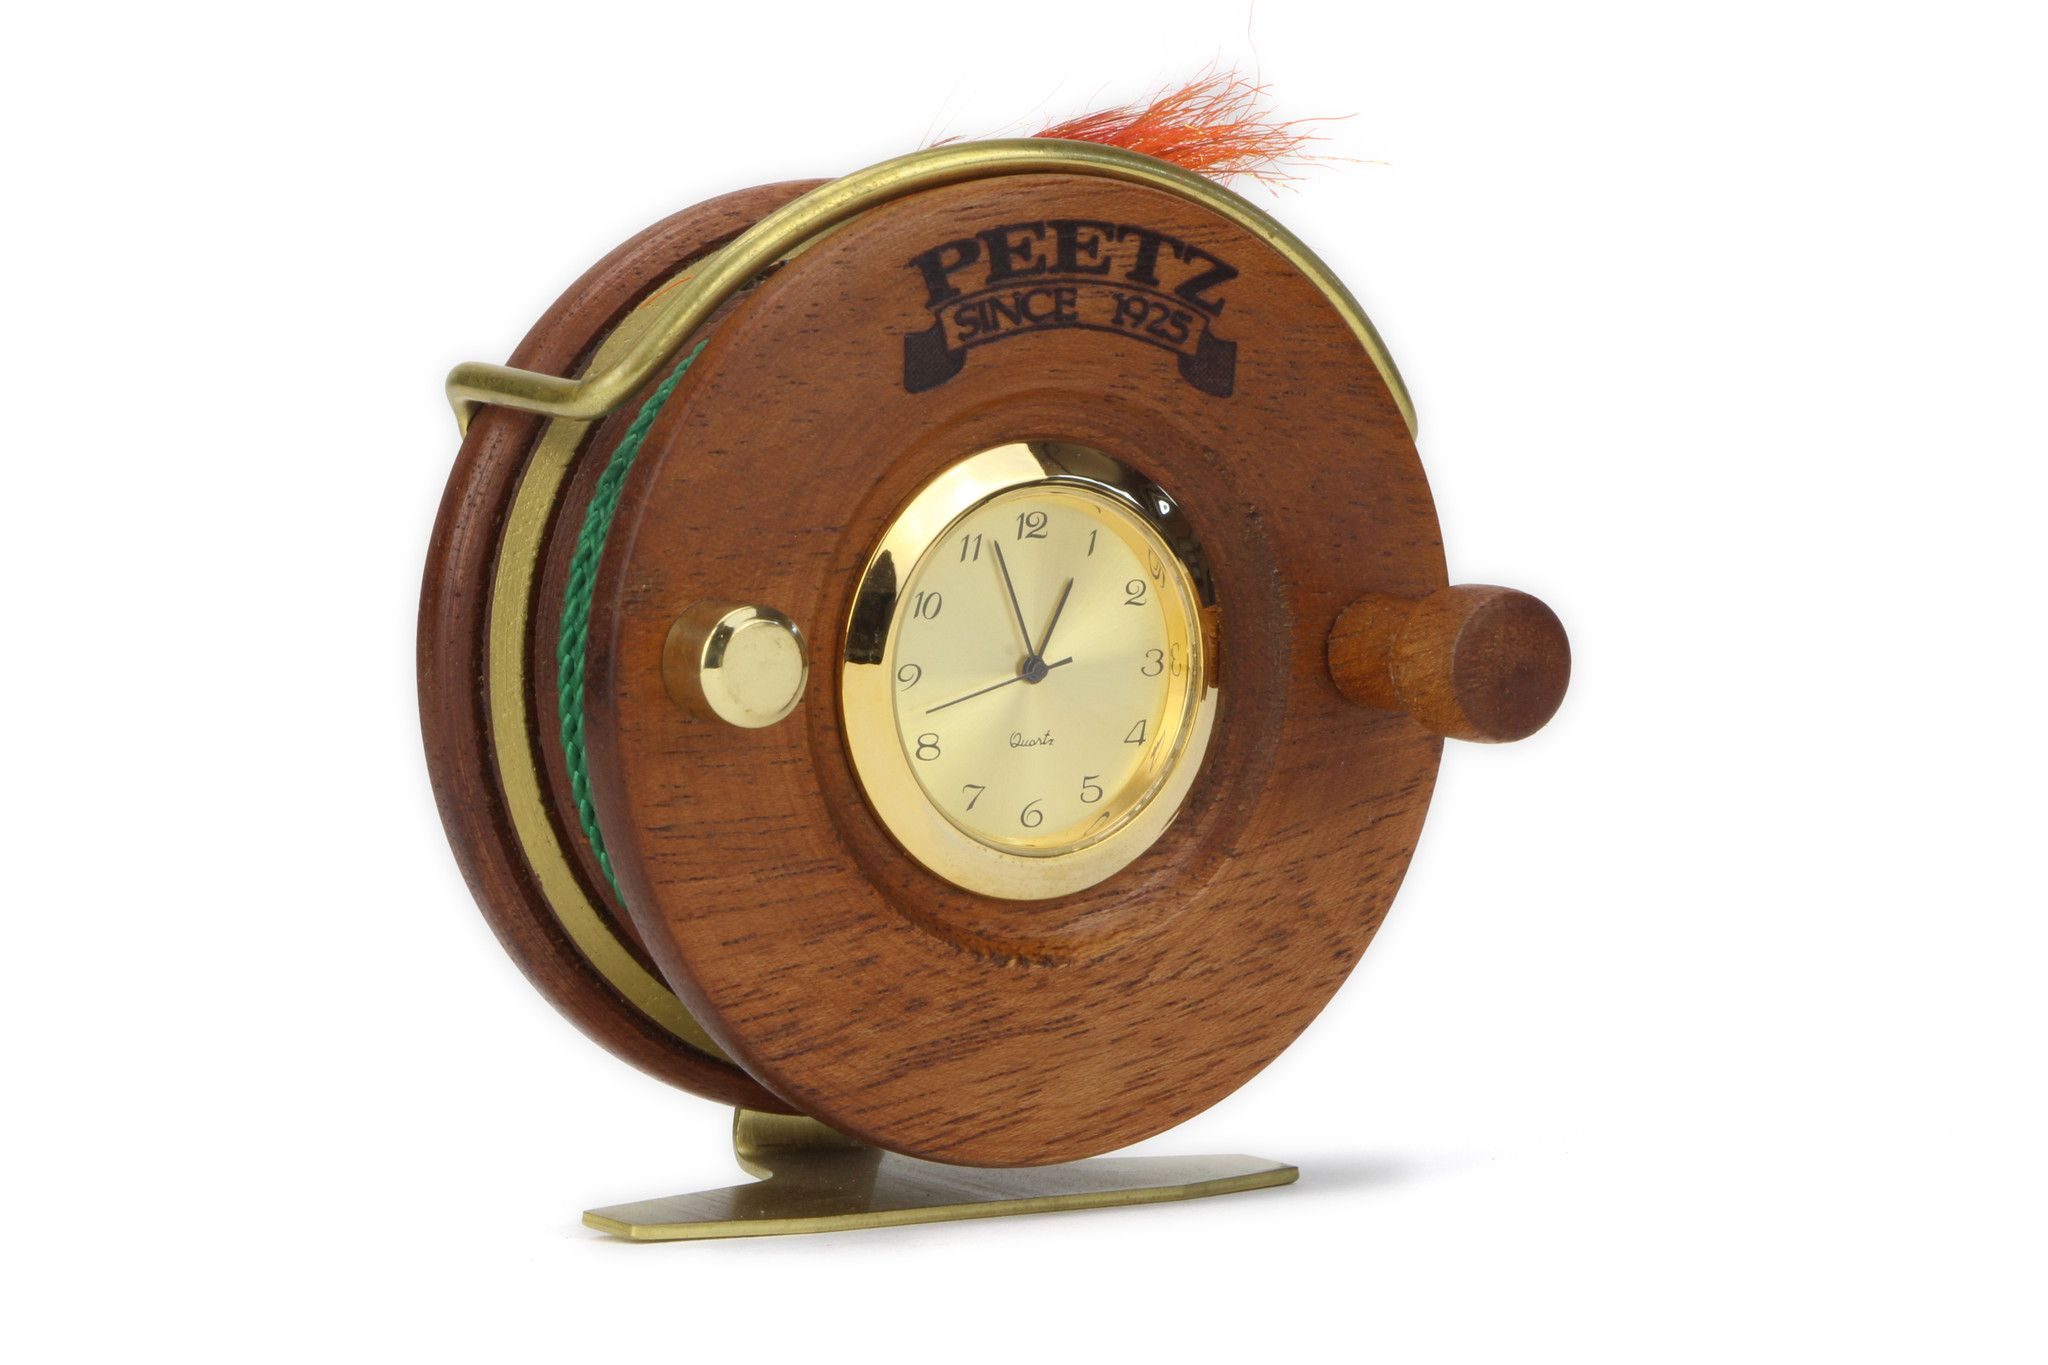 Fly Fishing Desk Clock A Great Gift For The Fisherman In Your